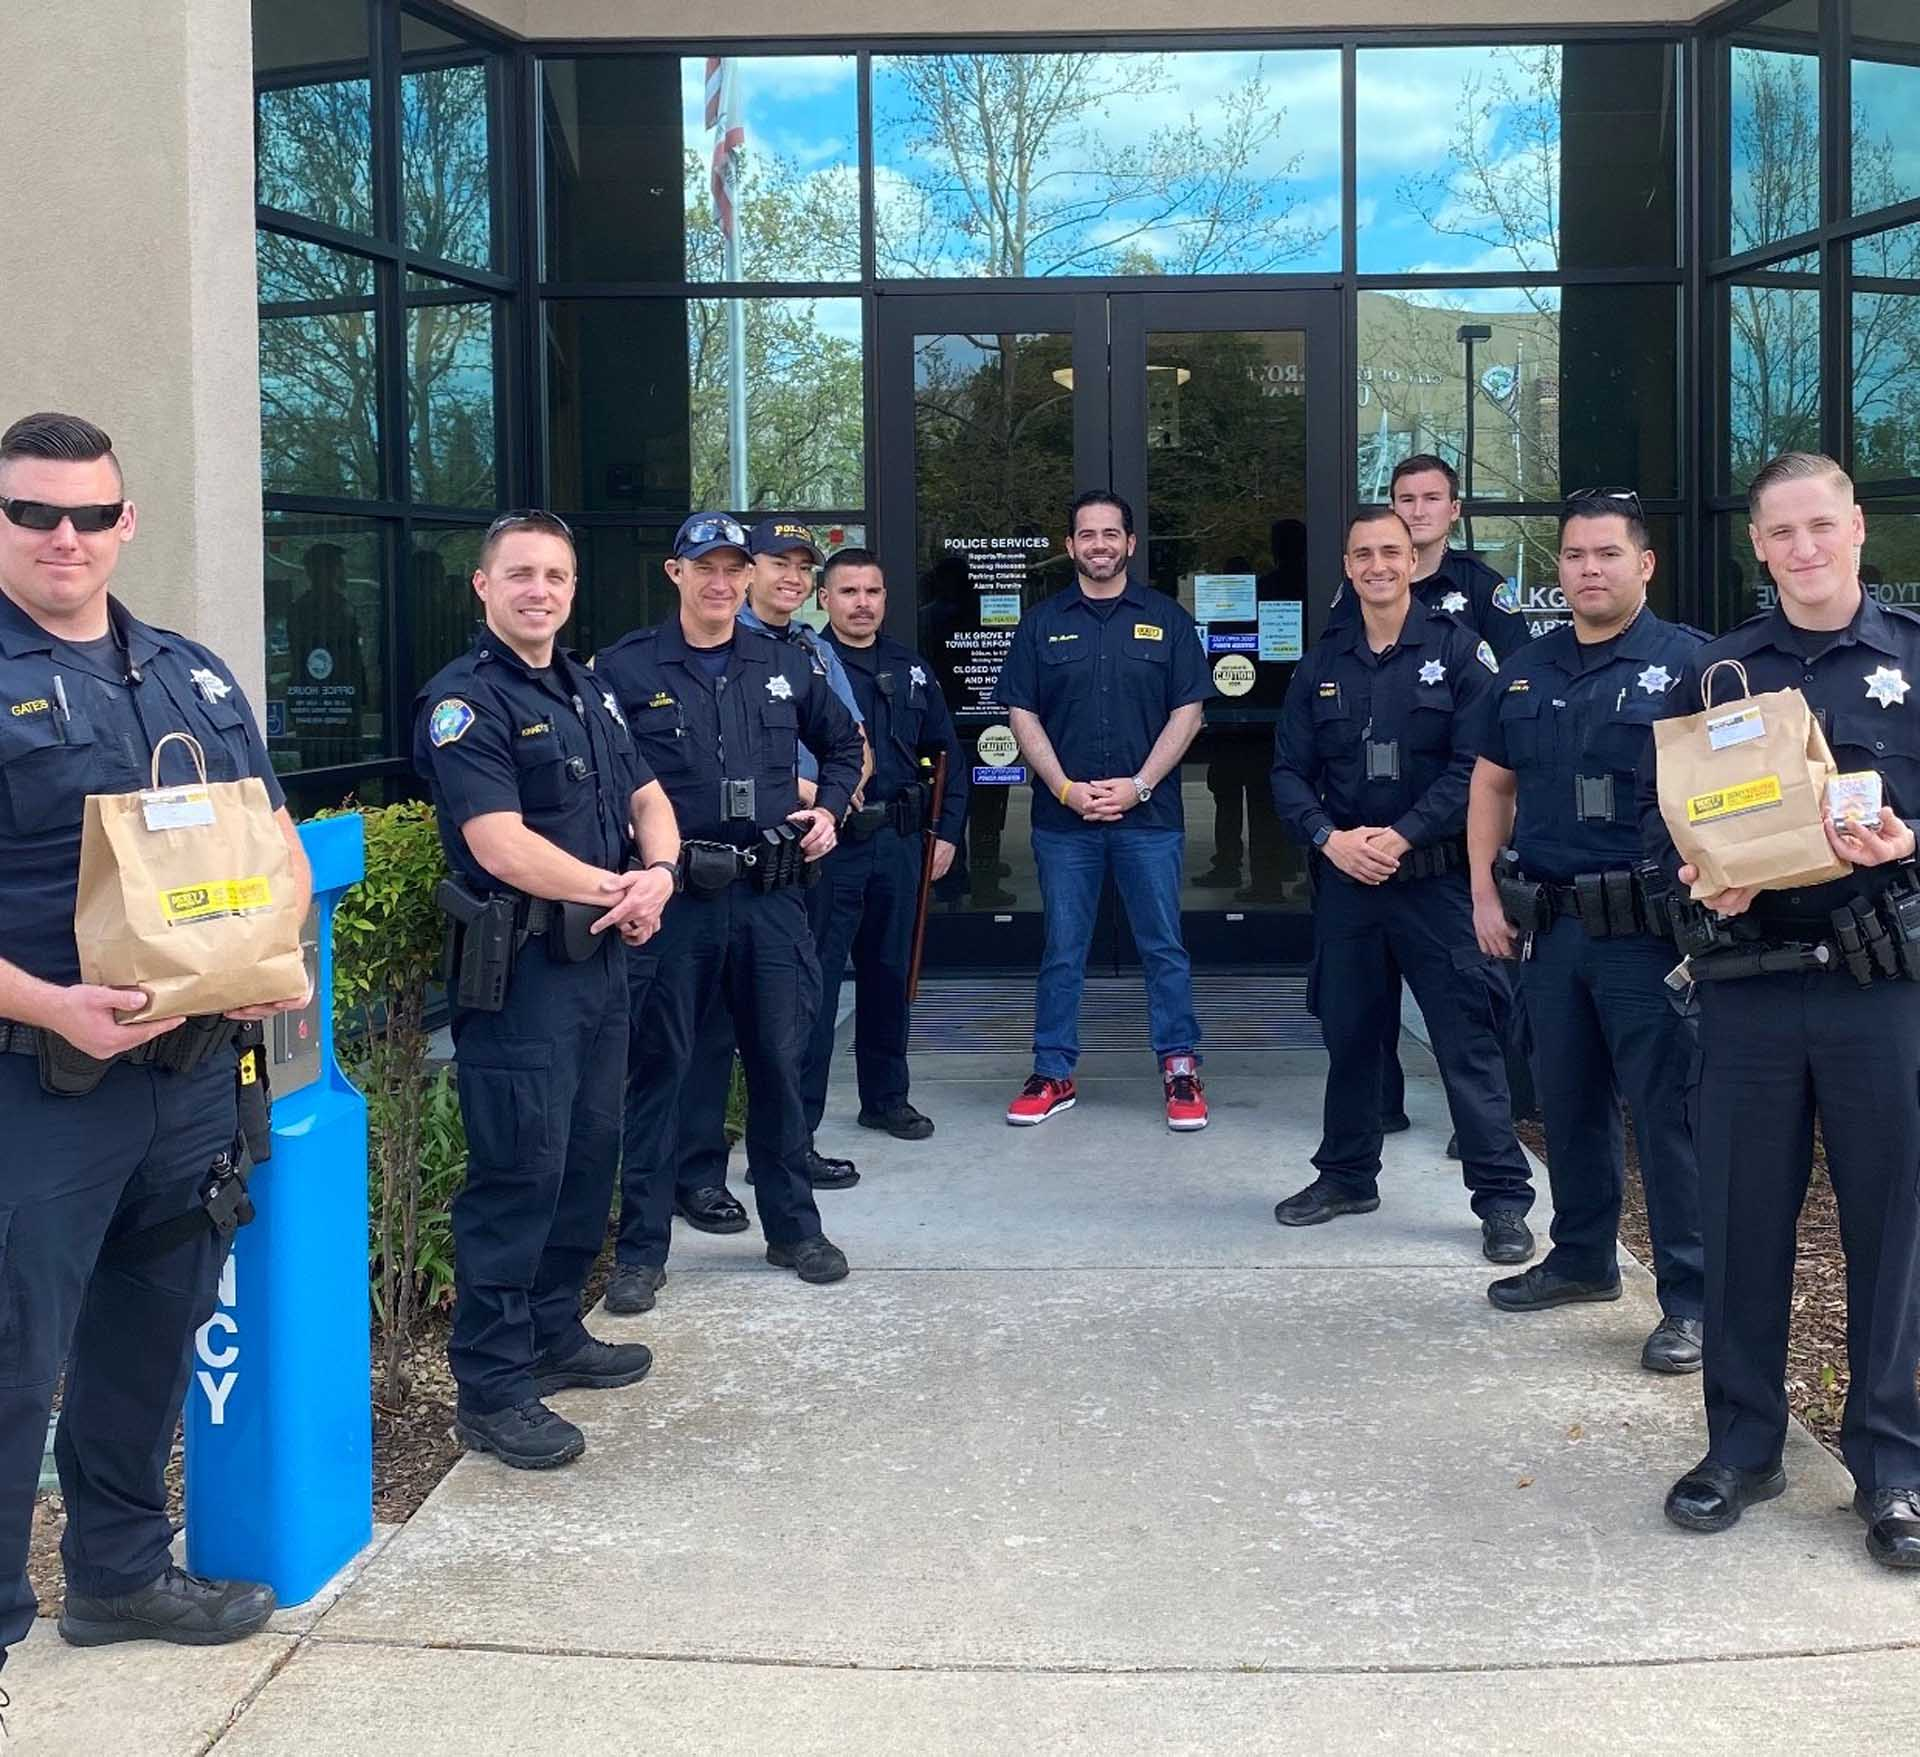 Dickey's Barbecue Pit: Serving the Elk Grove Police Department